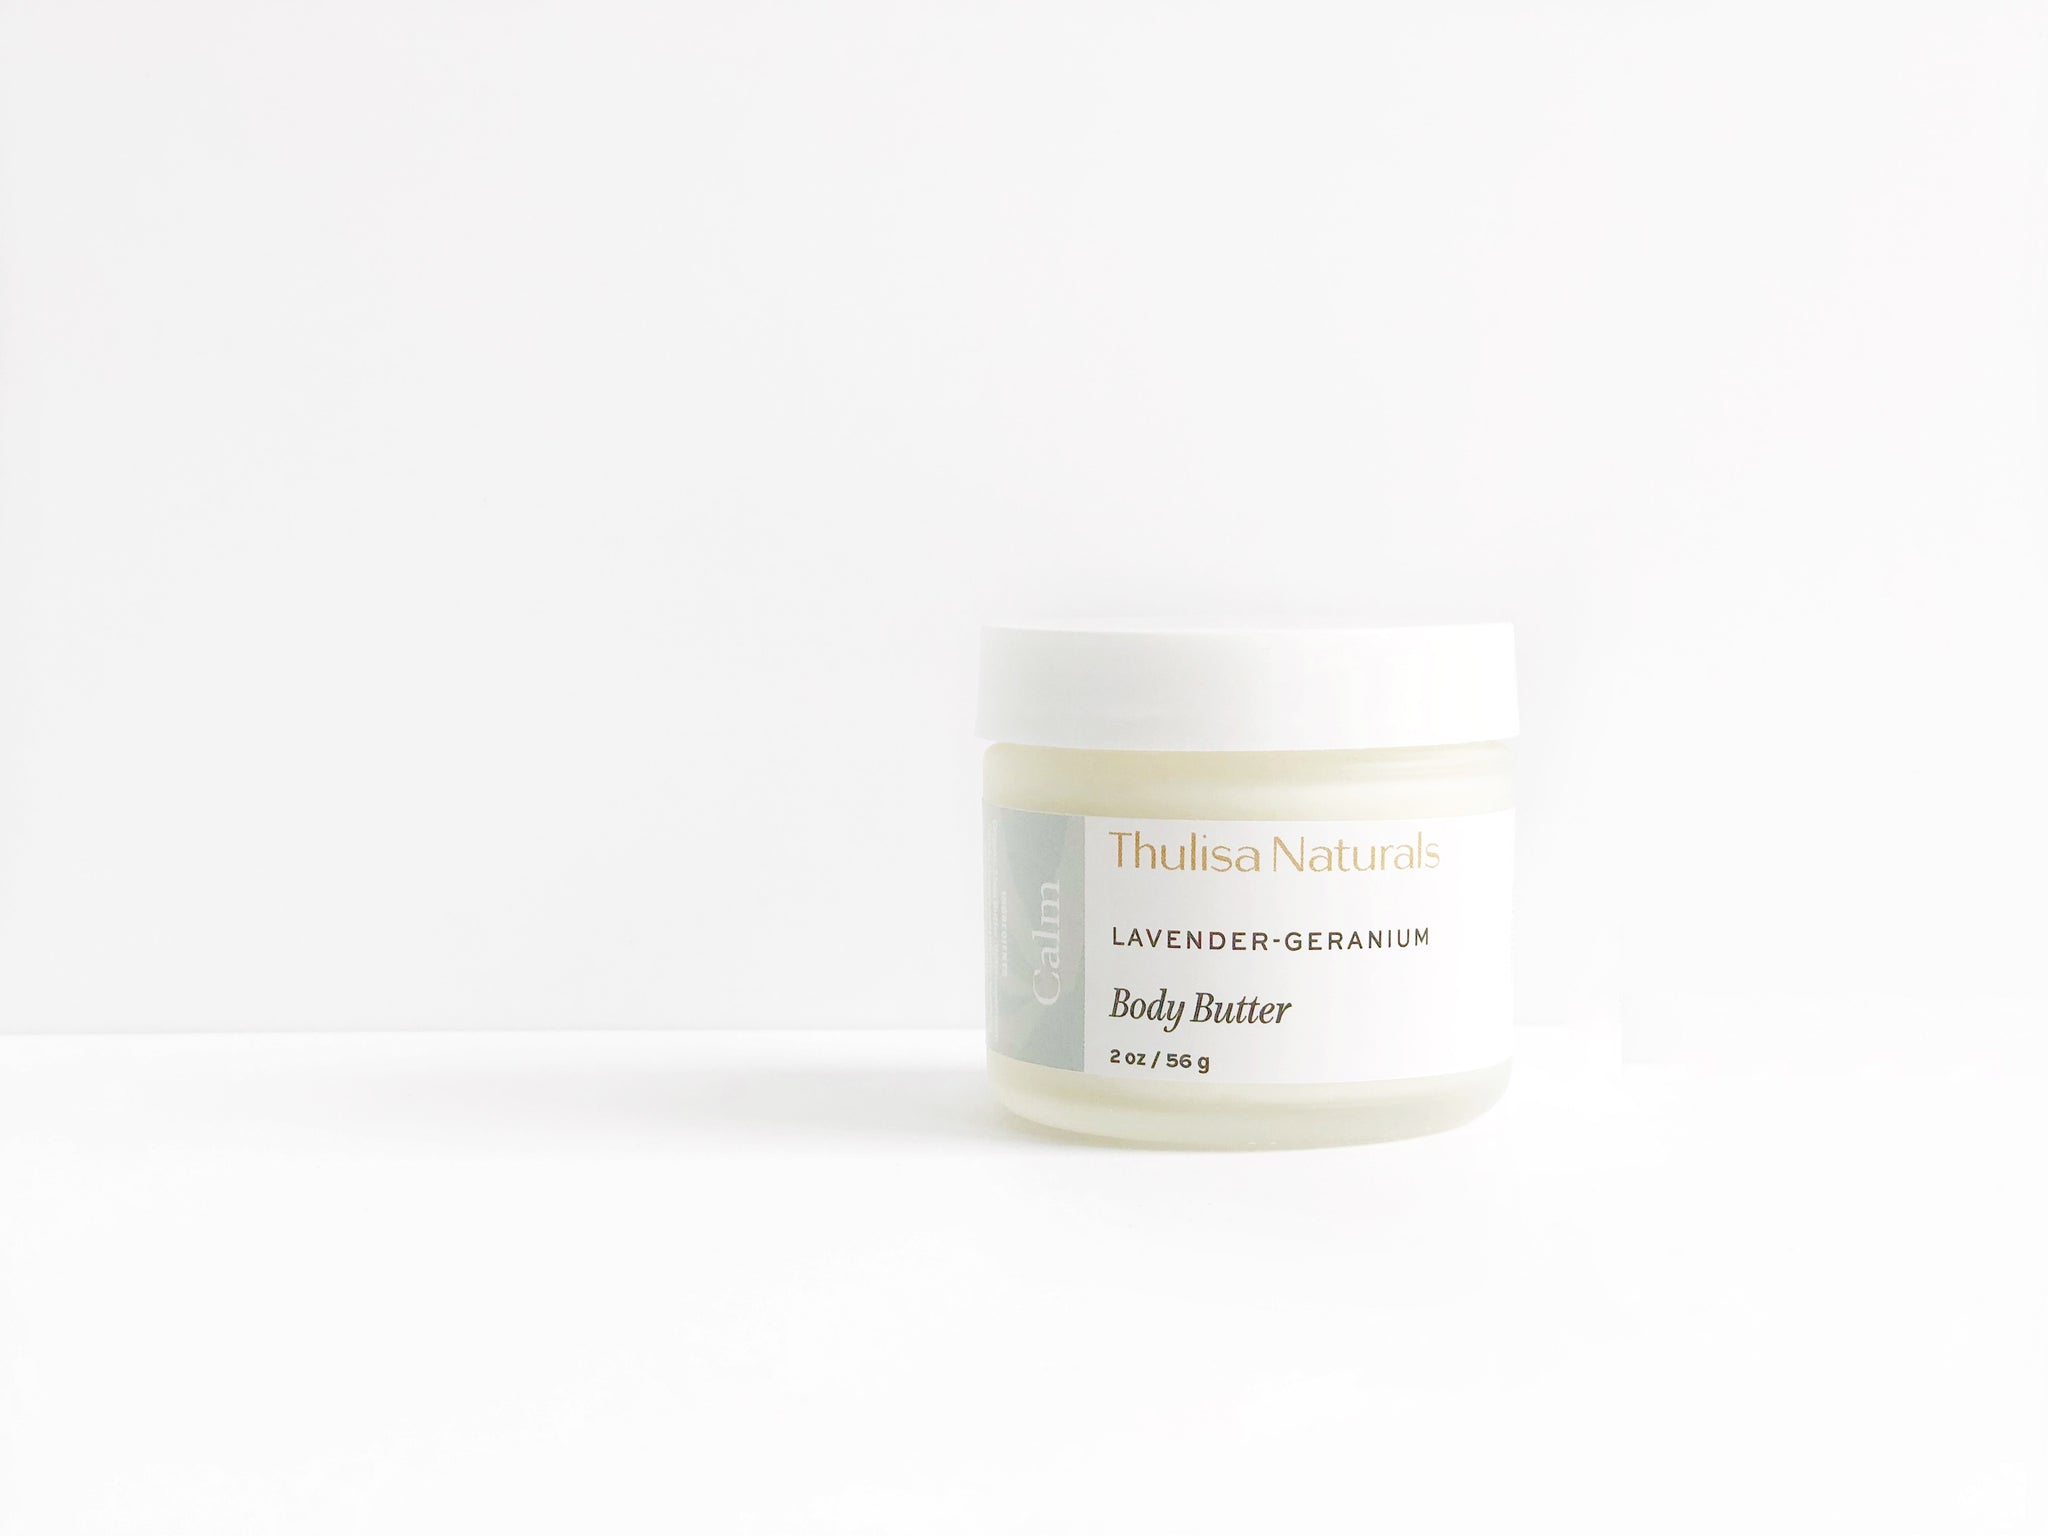 Calming Lavender-Geranium Body Butter